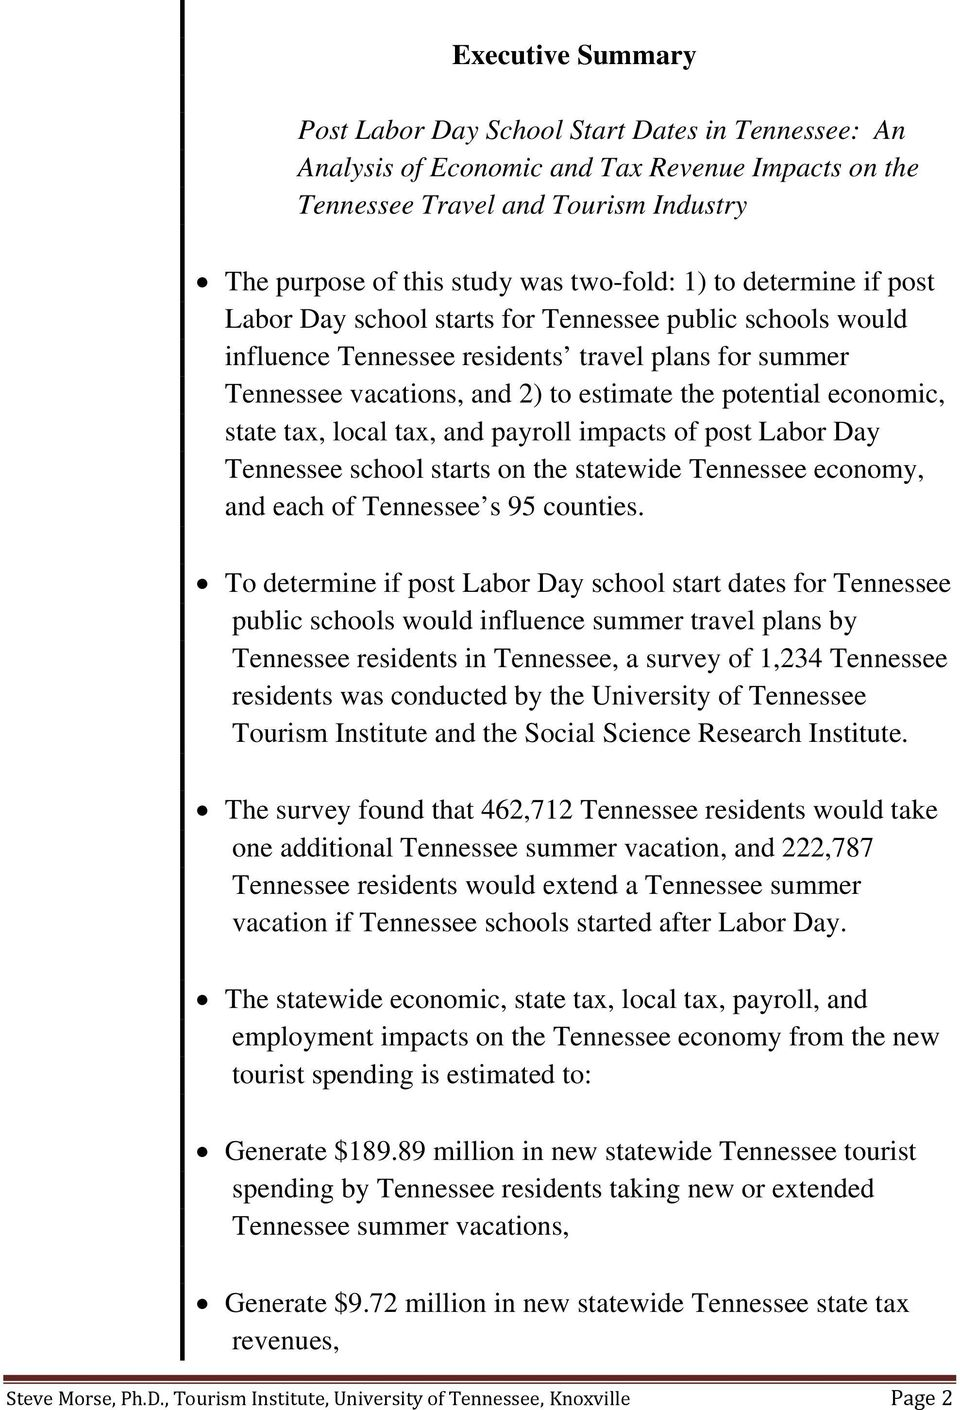 economic, state tax, local tax, and payroll impacts of post Labor Day Tennessee school starts on the statewide Tennessee economy, and each of Tennessee s 95 counties.